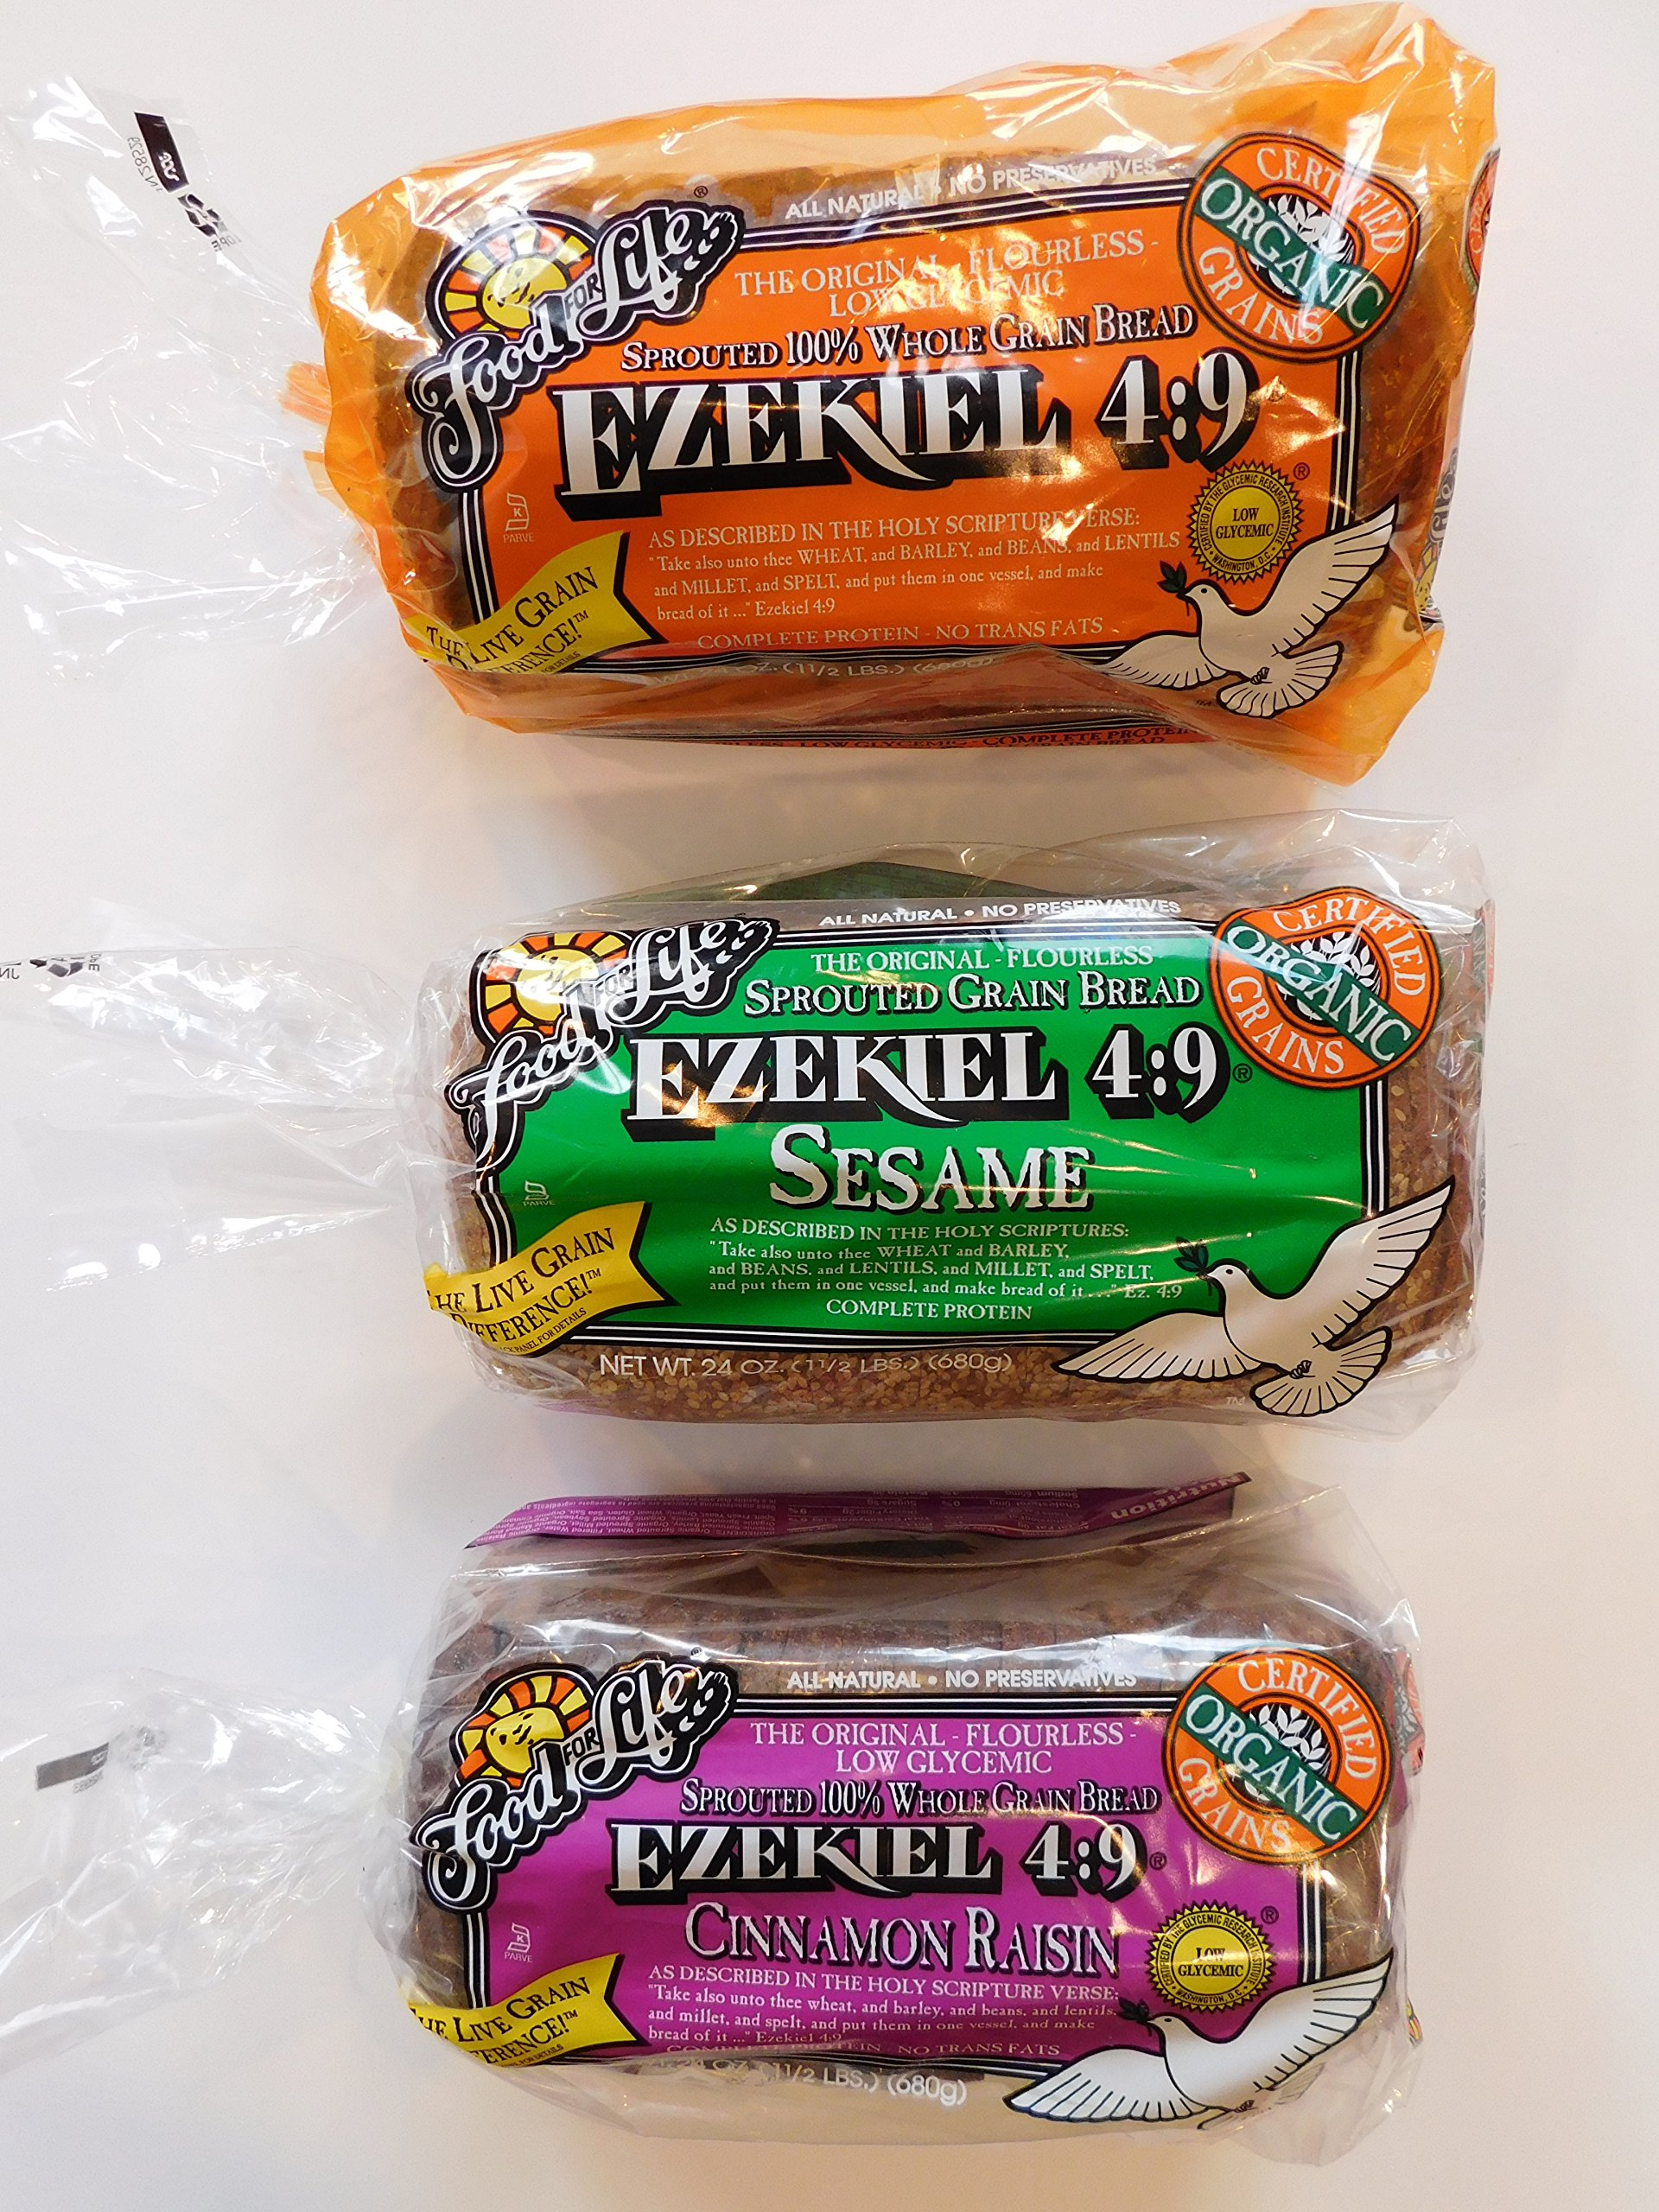 Food for Life, Ezekiel 4:9 Bread, Original Sprouted, Cinnamon Raisin, Sesame 3 Pack by BUNCH OF CHAZARI NO AFFILATION WITH TRADER JOE'S